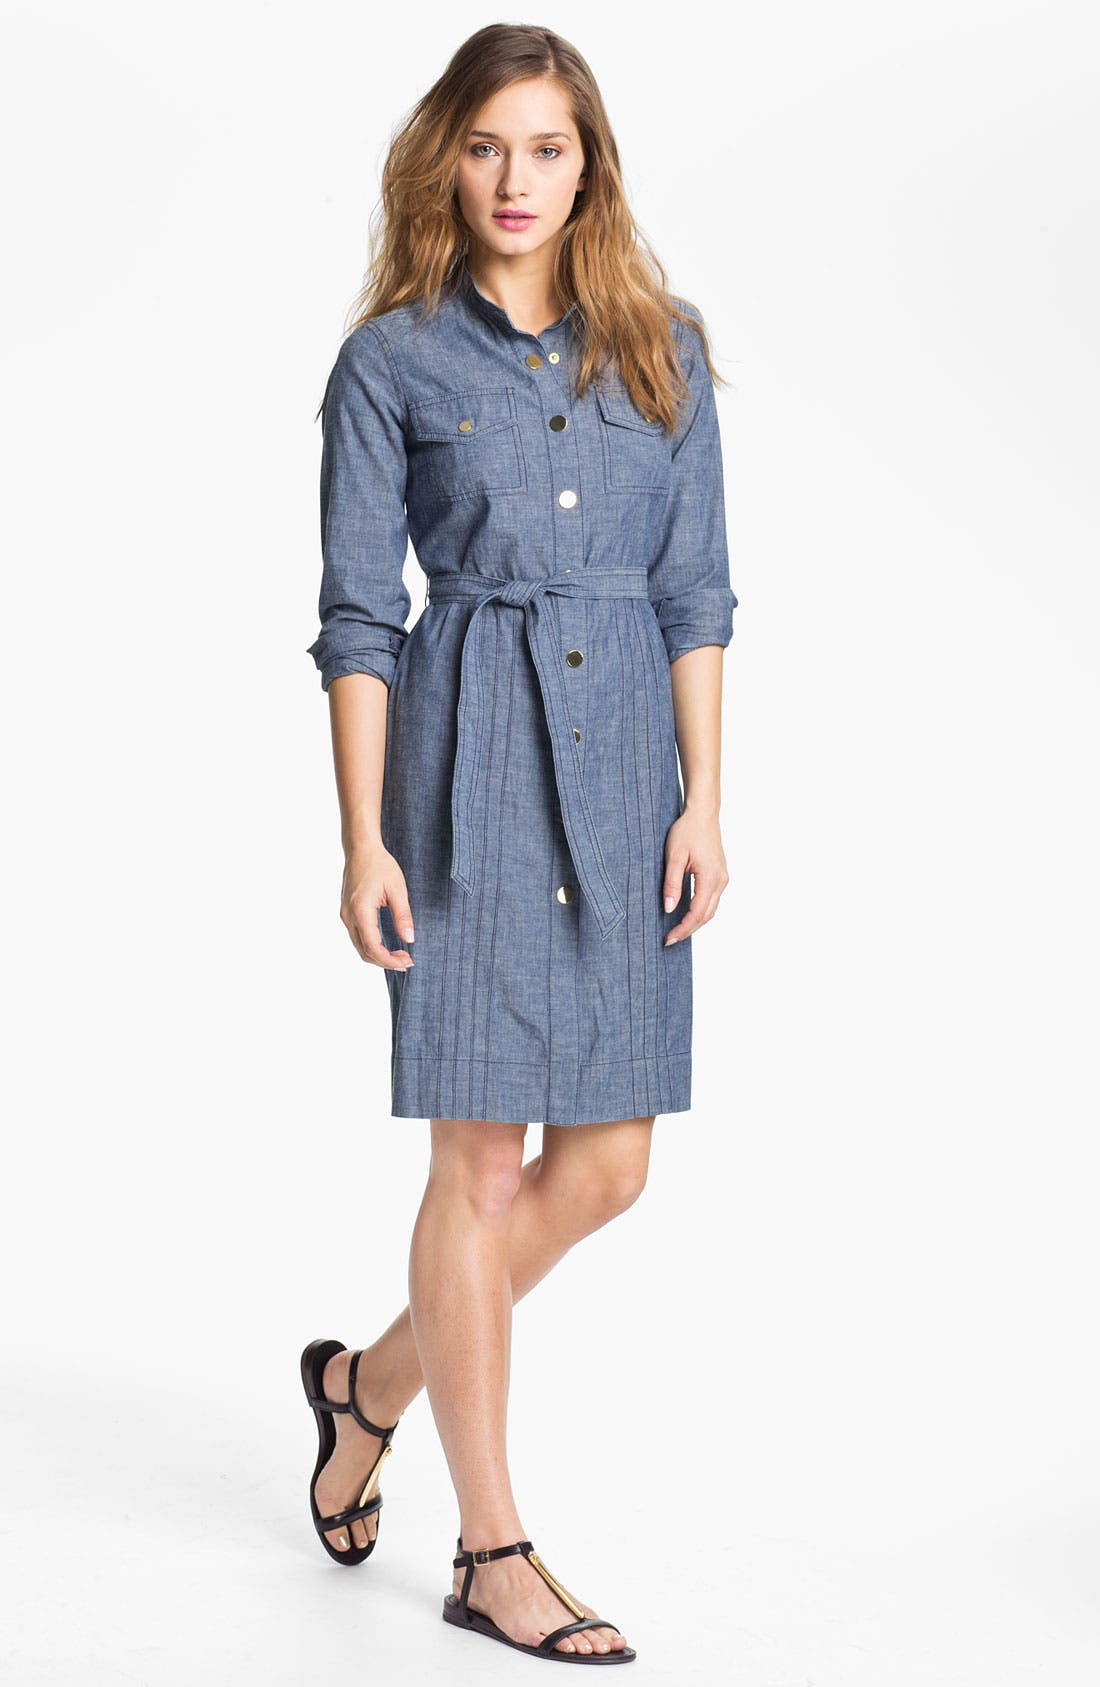 Alternate Image 1 Selected - Tory Burch 'Cora' Cotton Shirtdress